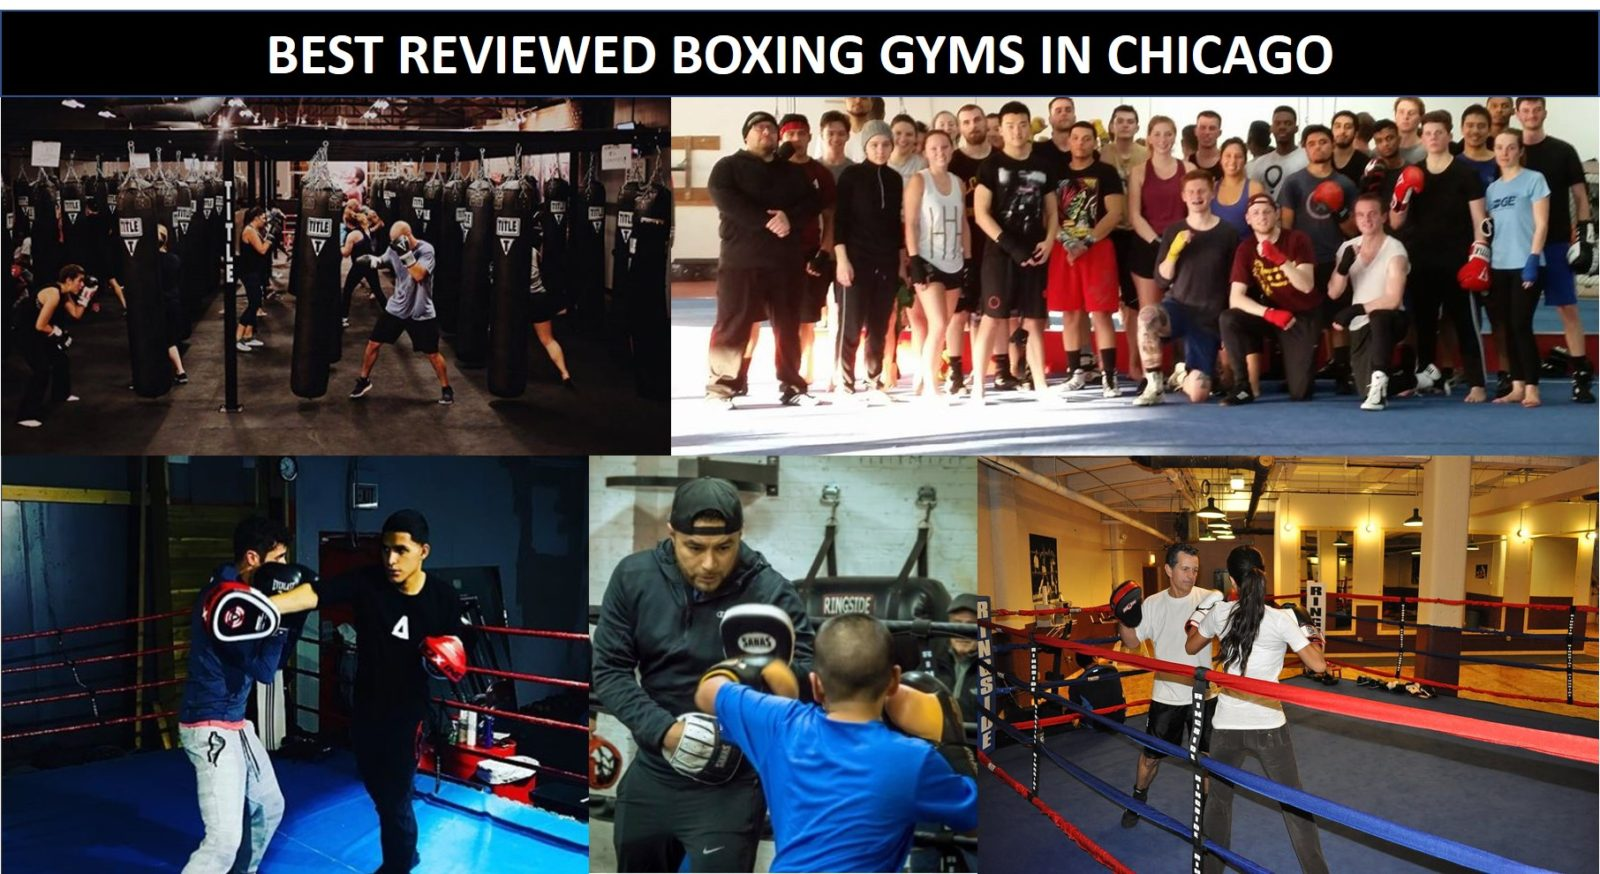 Best Boxing Gyms in Chicago